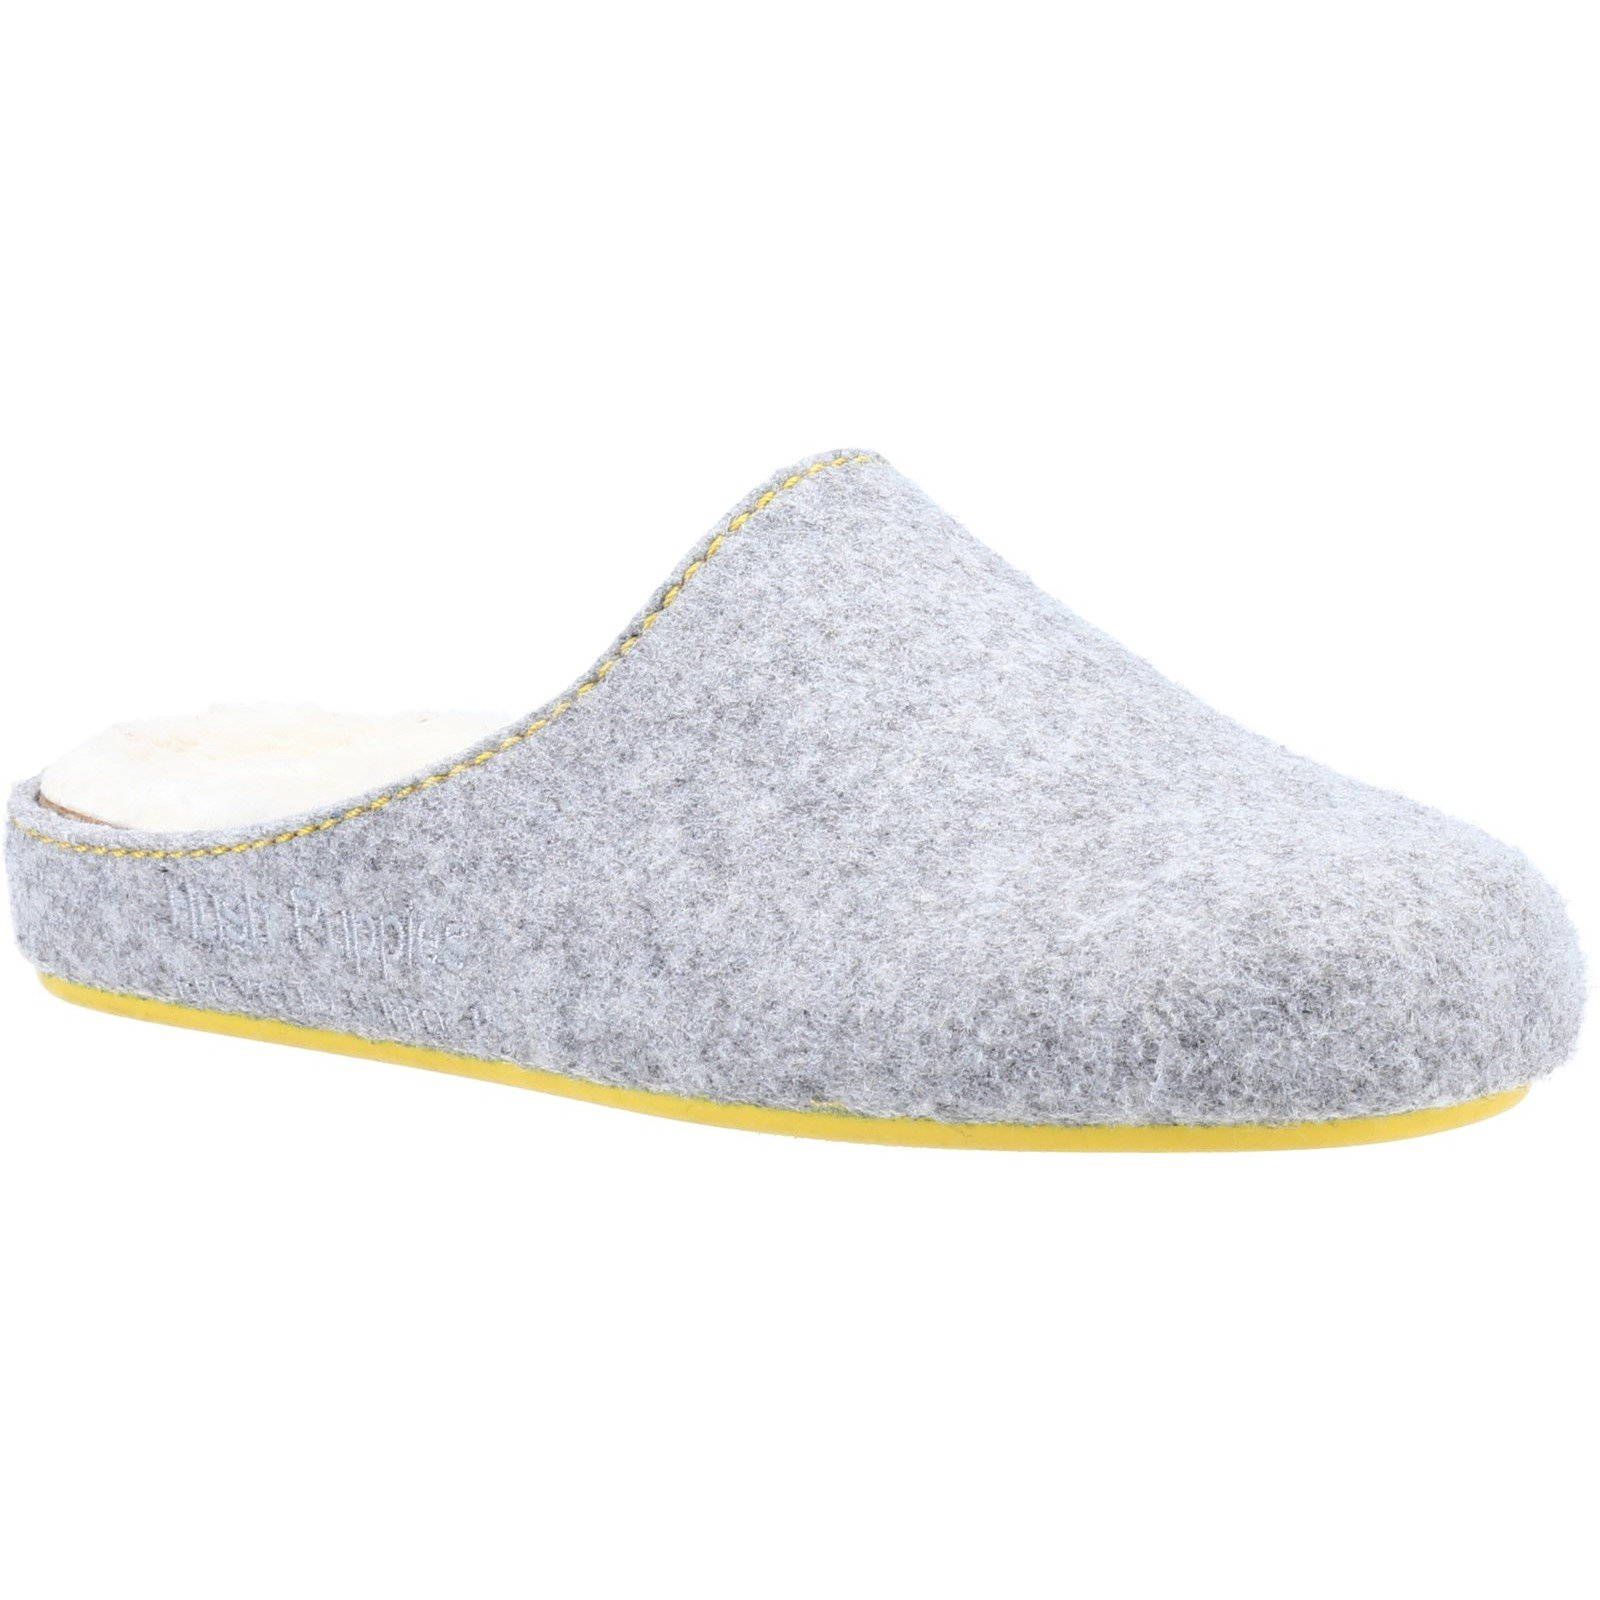 Hush Puppies Women's Remy Slipper Various Colours 32853 - Grey 6